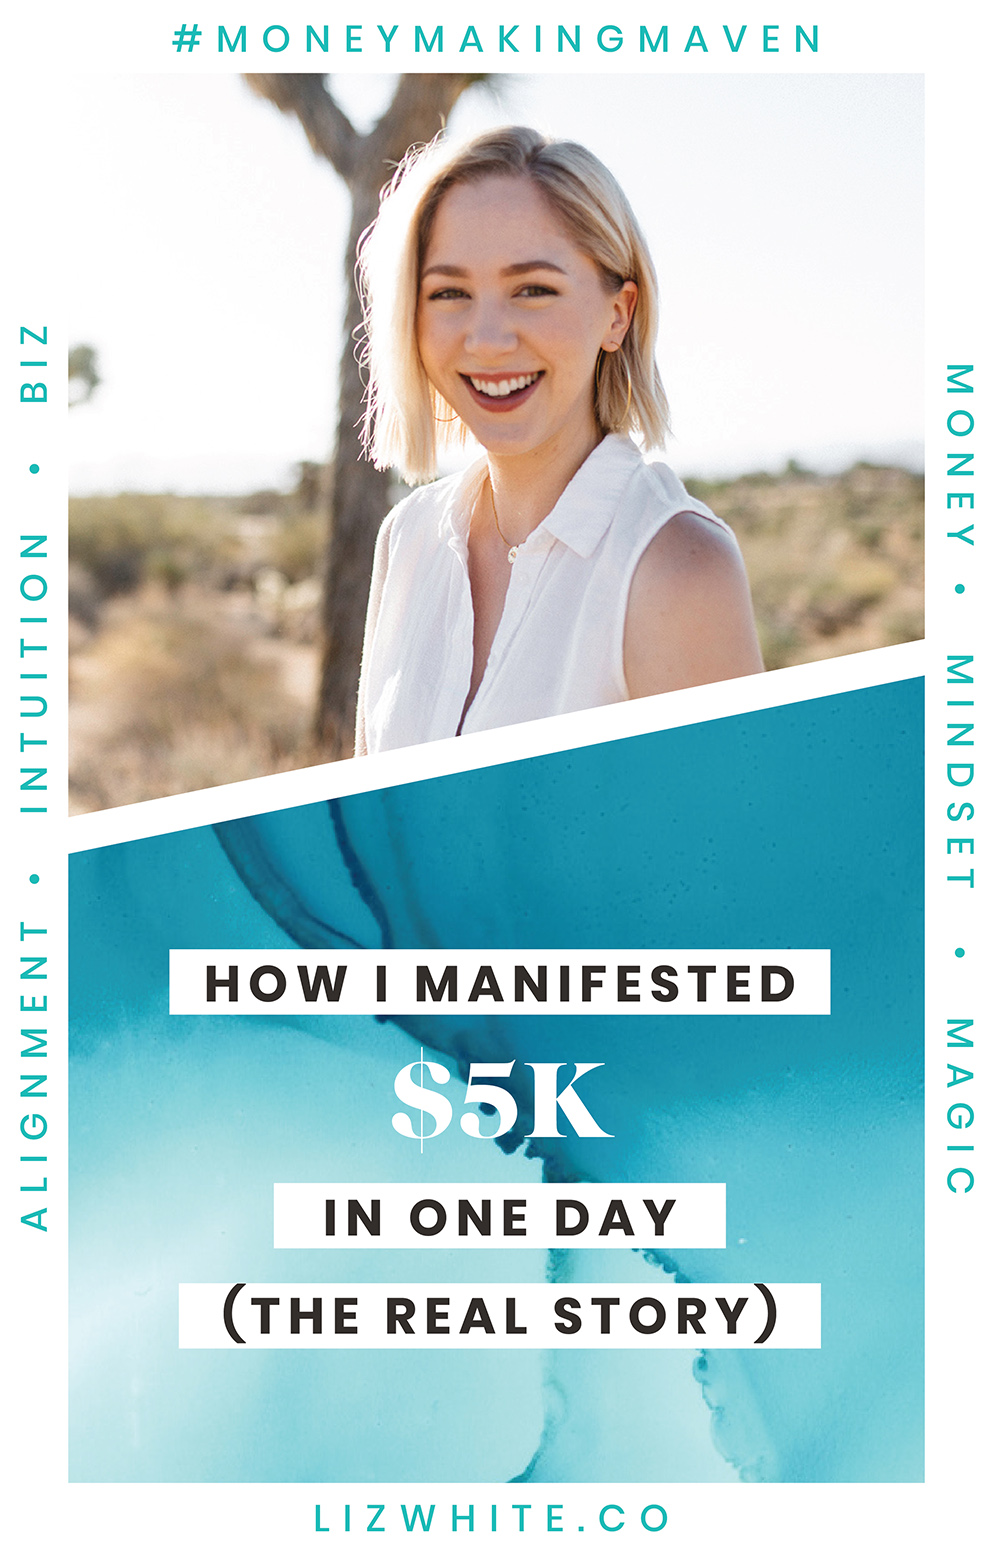 Getting Real With Manifesting: Manifesting 5K In One Day | Liz White | #manifesting #moneymakingmaven #creativepreneur #intuitivebusiness | It's easy to think that manifestation is all rainbows and unicorns… but no one talks about what drives them to begin mindset and manifestation work in the first place.